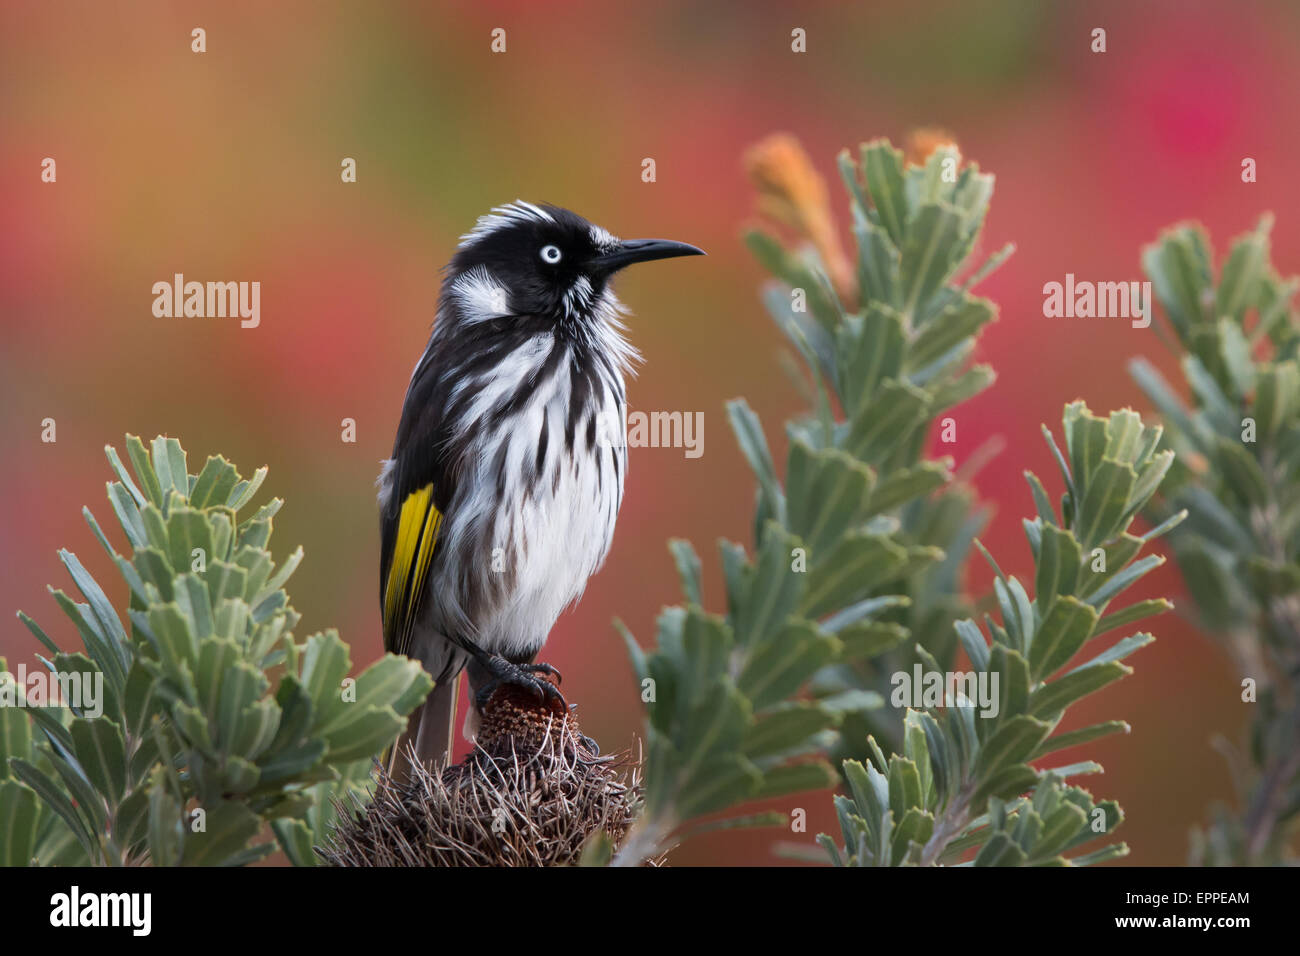 New Holland Honeyeater (Phylidonyris novaehollandiae) - Stock Image